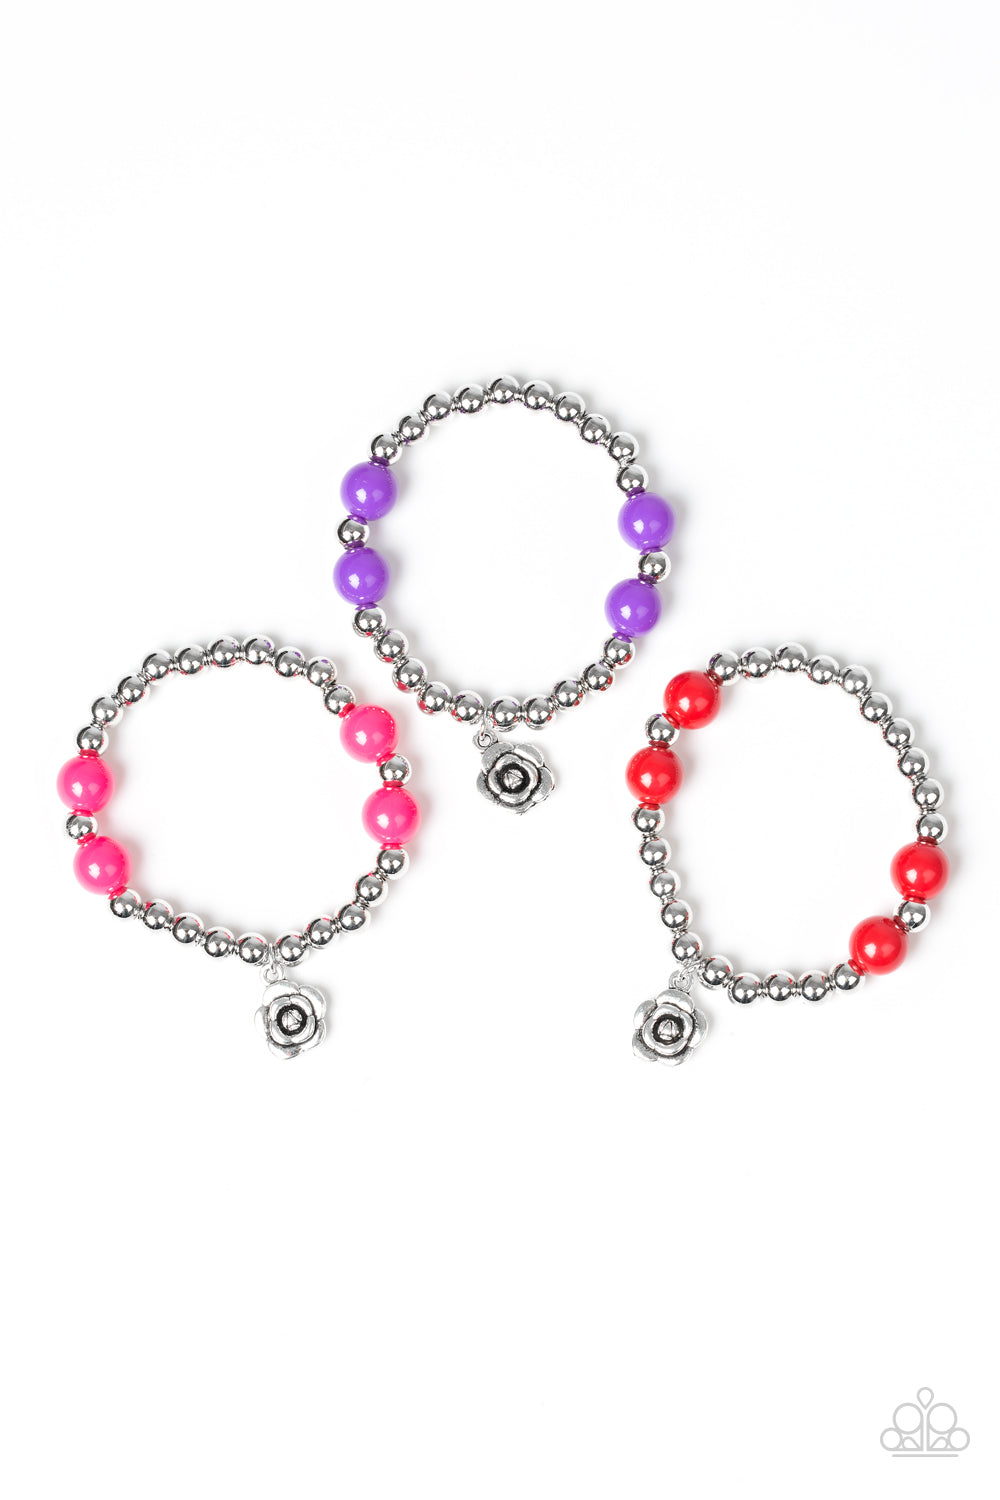 Starlet Shimmer Bracelet With Charm - Paparazzi Accessories